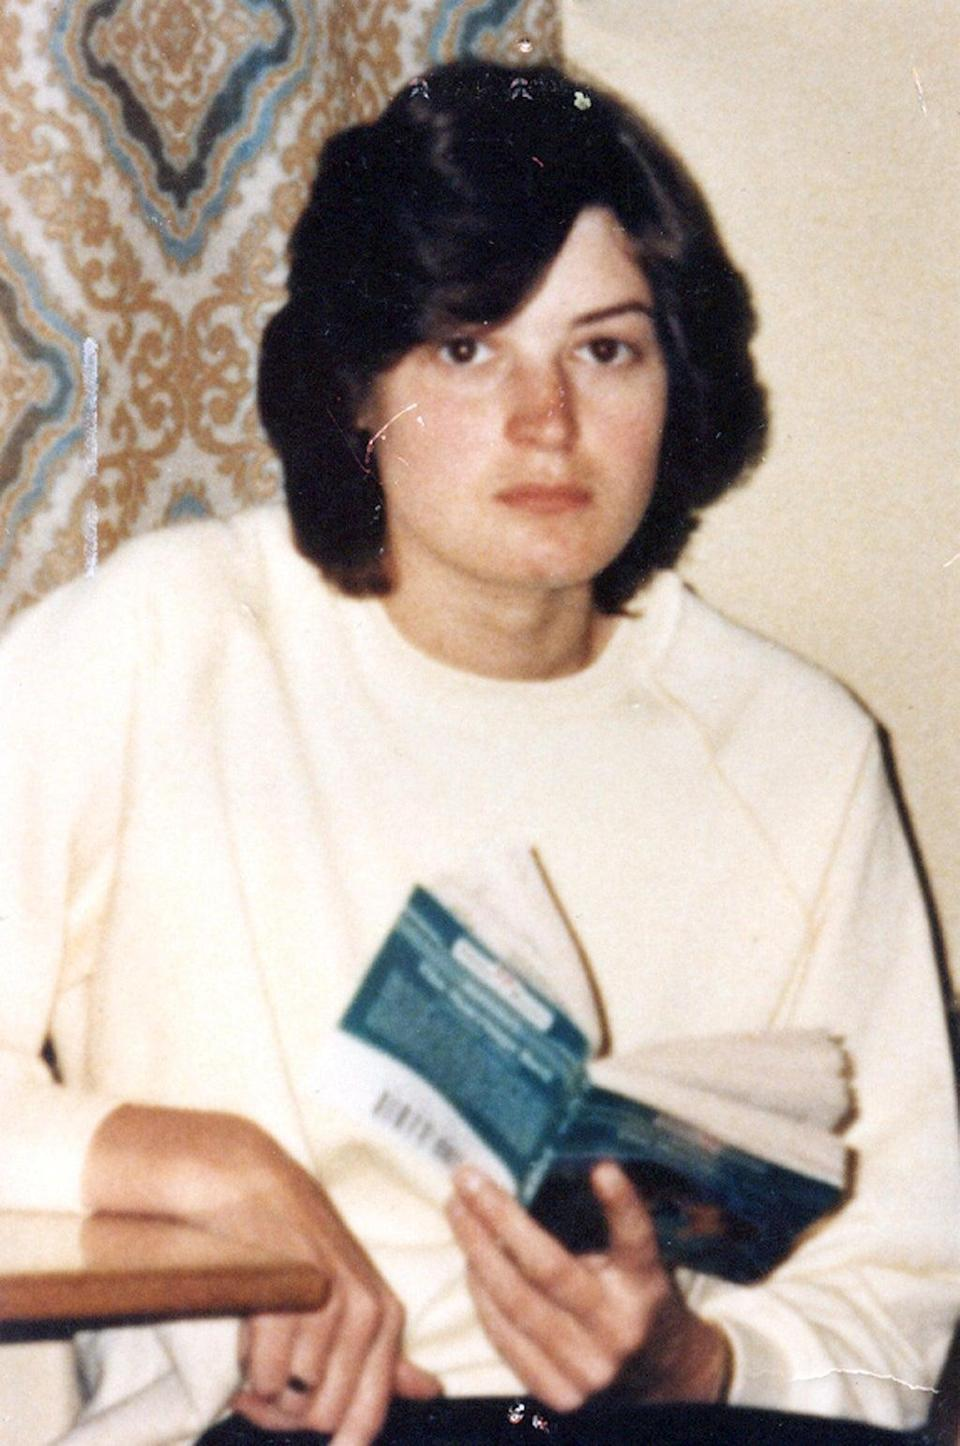 Wendy Knell was found dead in her bedsit in Tunbridge Wells, Kent, in 1987 (Kent Police/PA) (PA Media)